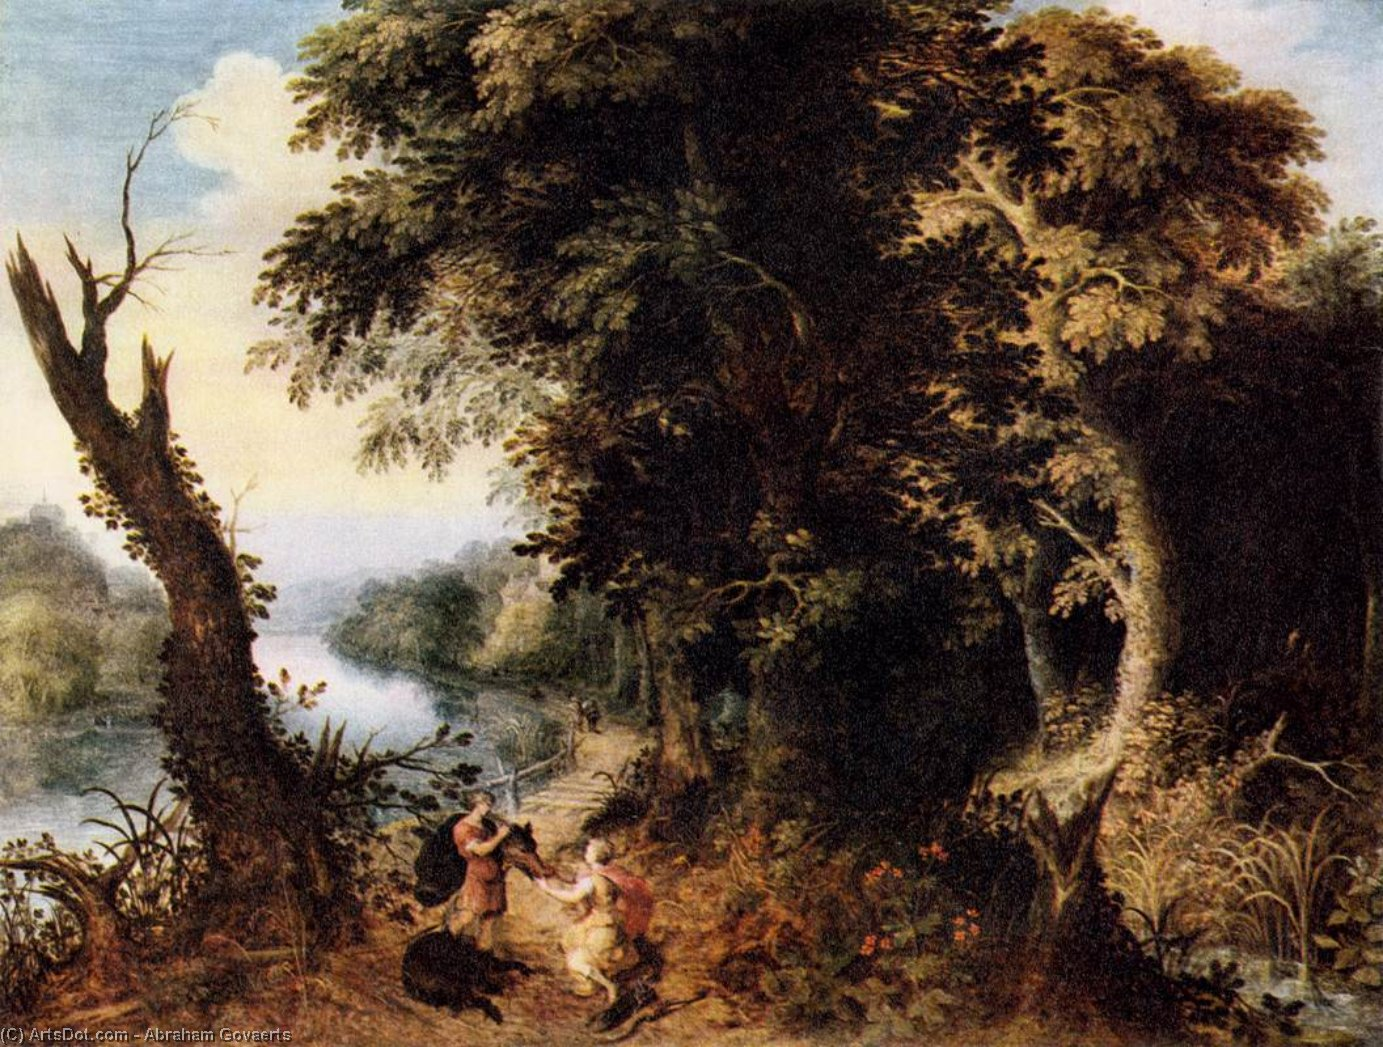 Landscape with Diana Receiving the Head of a Boar, Oil On Panel by Abraham Govaerts (1589-1626, Belgium)